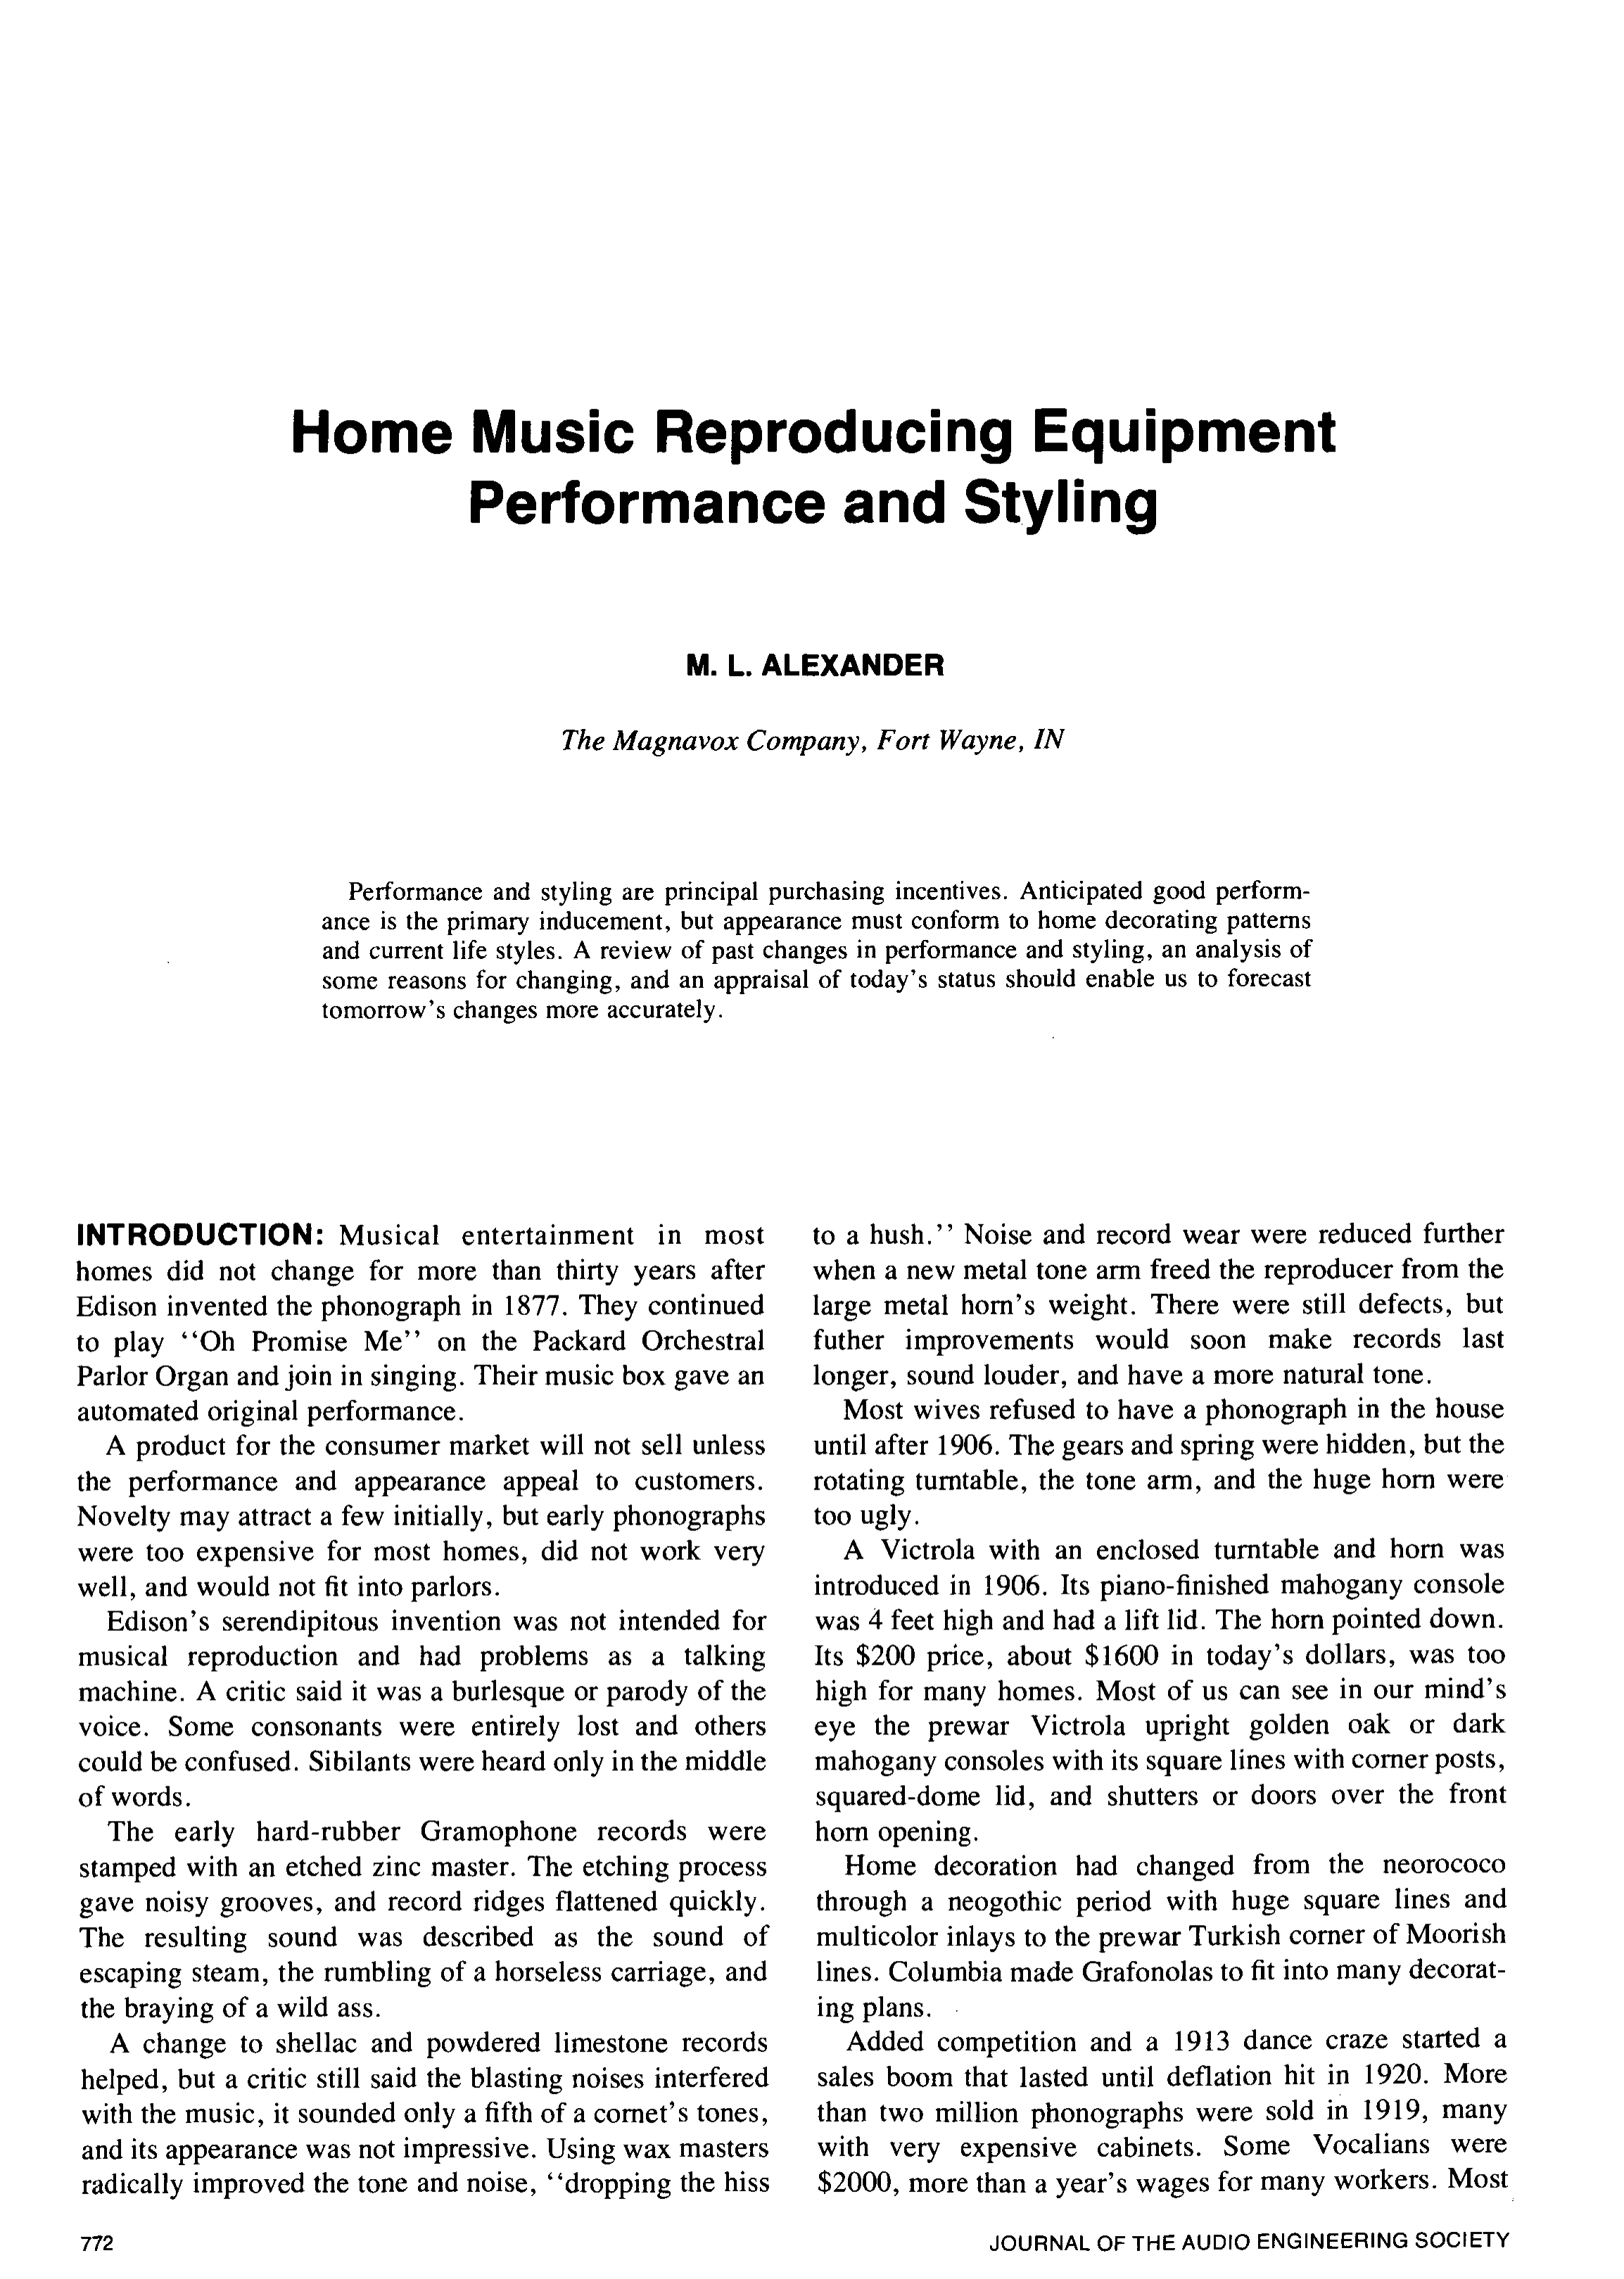 AES E-Library » Home Music Reproducing Equipment-Performance